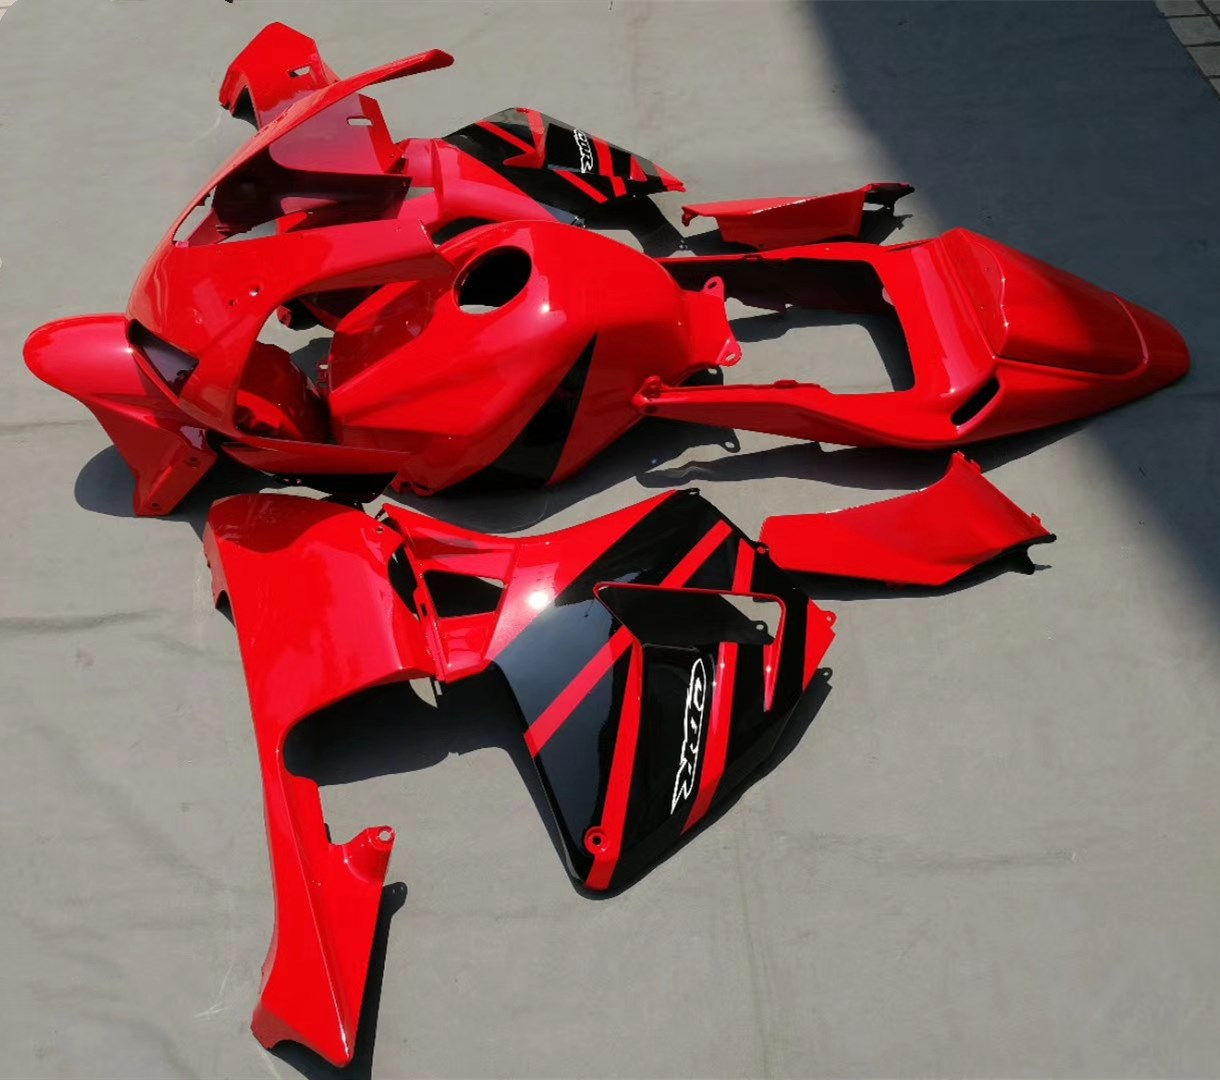 Motorcycle Injection Mold Fairing Kit For Honda CBR600RR CBR 600RR 2003 2004 CBR600 RR CBR 600 RR 03 04 Red Fairings Bodywork unpainted tail fairing kit rear for honda cbr600rr cbr 600 rr 2003 2004 cbr600 cbr 600rr 03 04 motorcycle frame injection mold